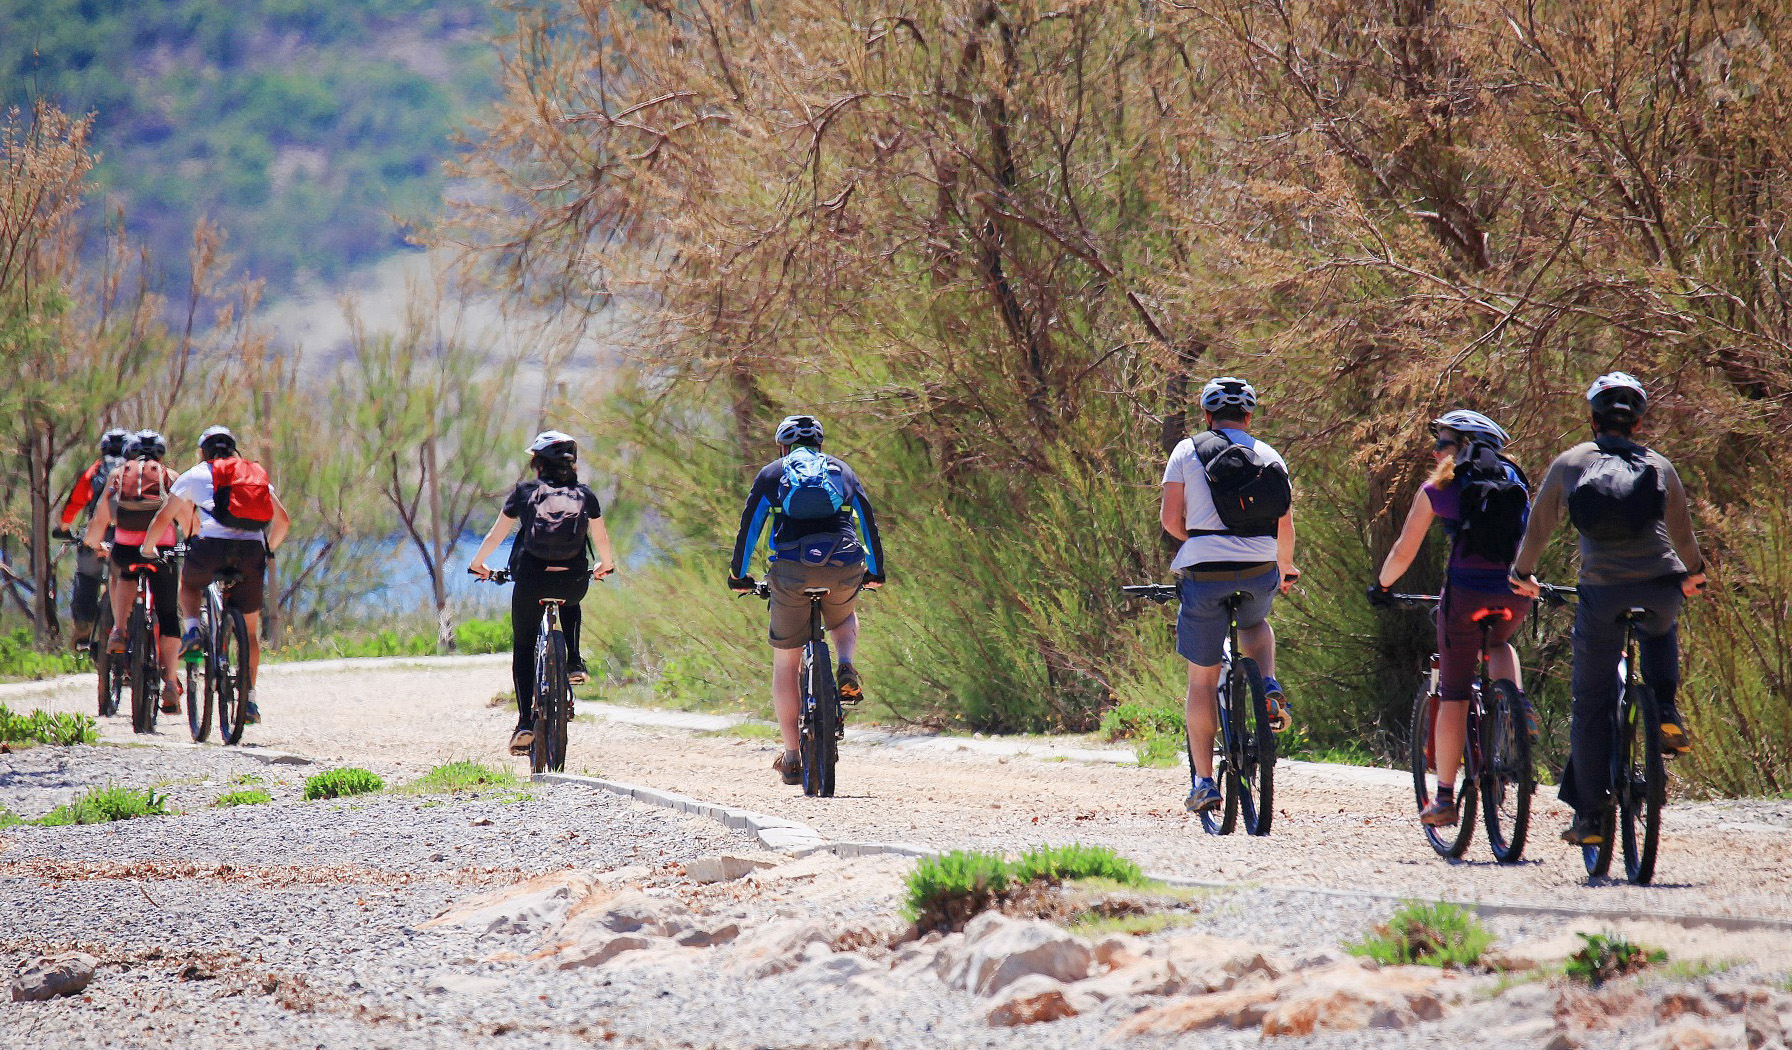 Biking tour in Paklenica national park